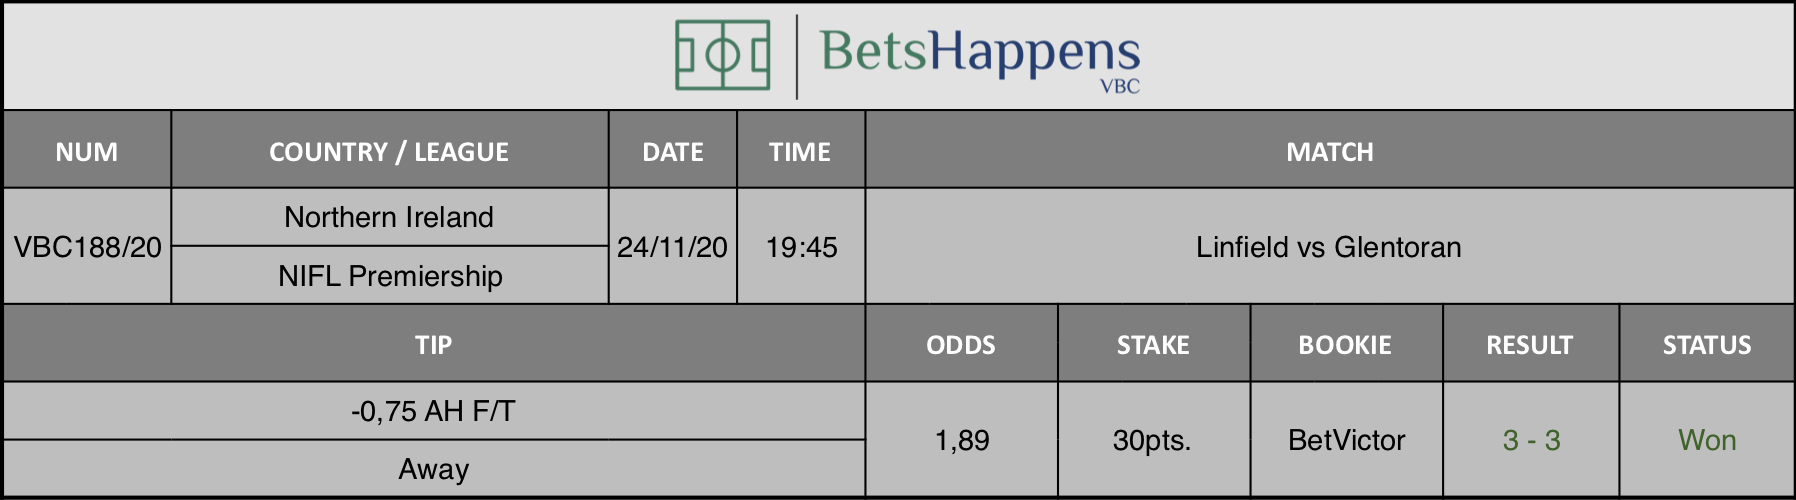 Results of our tip for the Linfield vs Glentoran match where -0,75 AH F/T - Away is recommended.